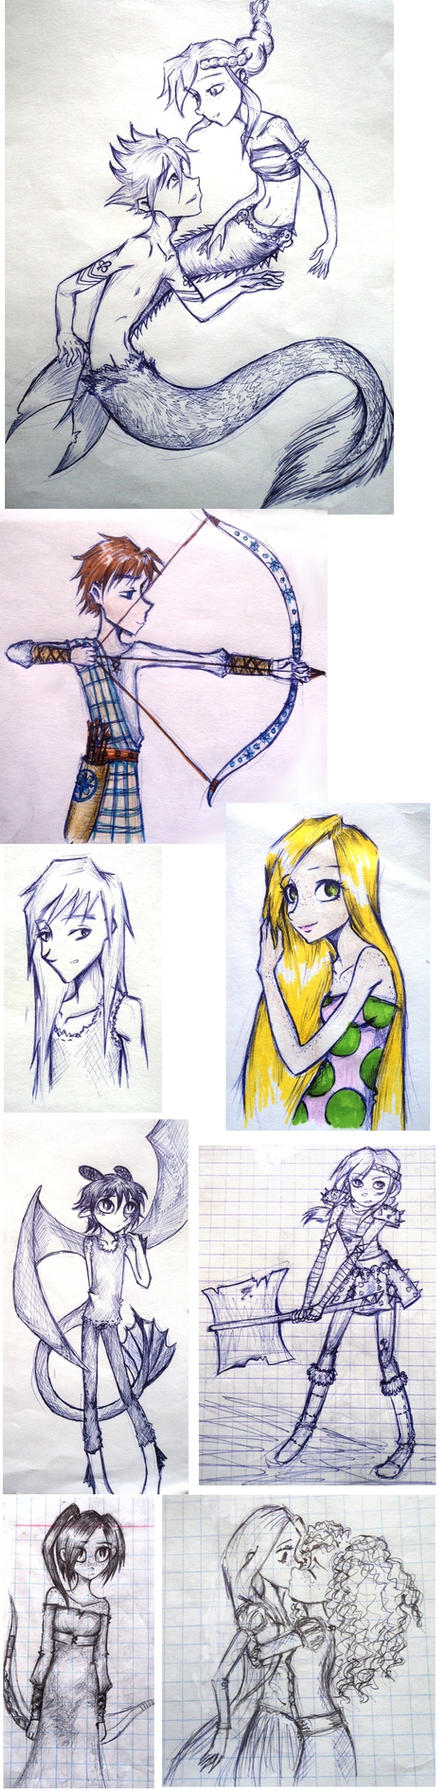 even more sketches by UkeHicForEva